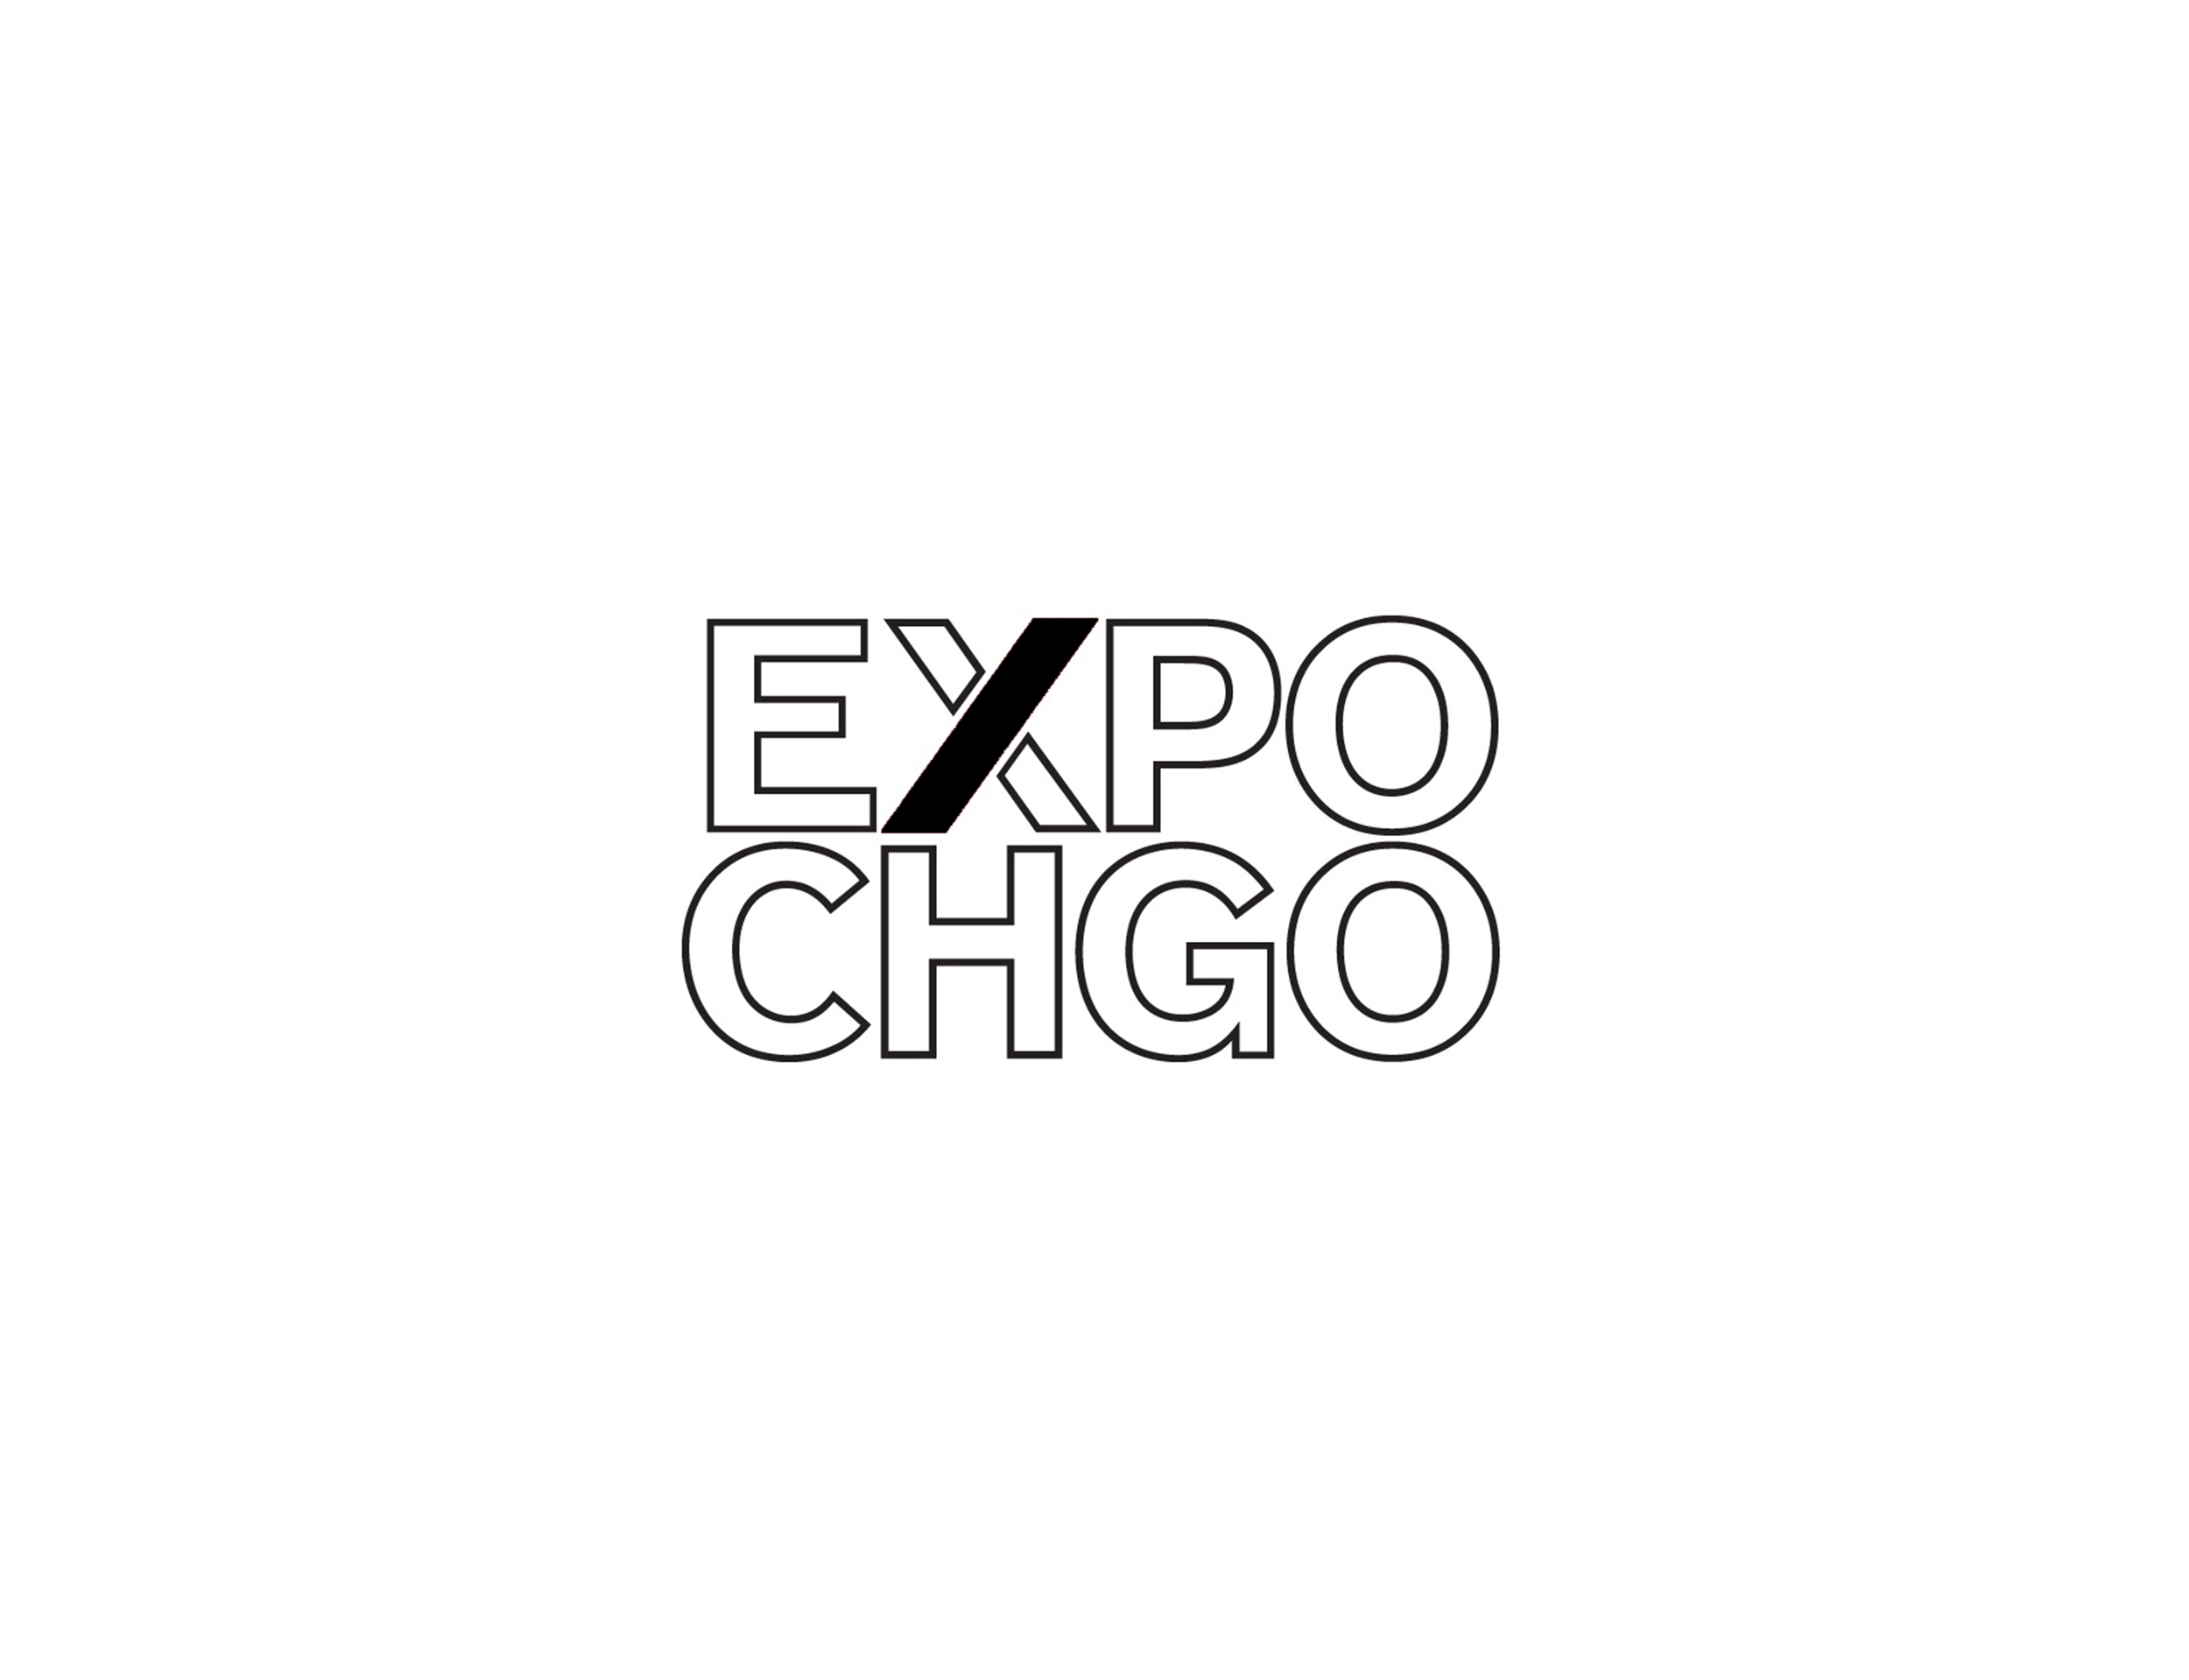 EXPO Chicago  CURRO | Booth 101 Eduardo Secci Contemporary 19-22 September 2019  CURRO Featured Artists: Octavio Abúndez , Alejandro Almanza Pereda,  Andrea Galvani , Adam Parker Smith  Eduardo Secci Featured Artists: Richard Dupont,  Andrea Galvani , Gerola Miller, Alfredo Pirri, Marco Tirelli